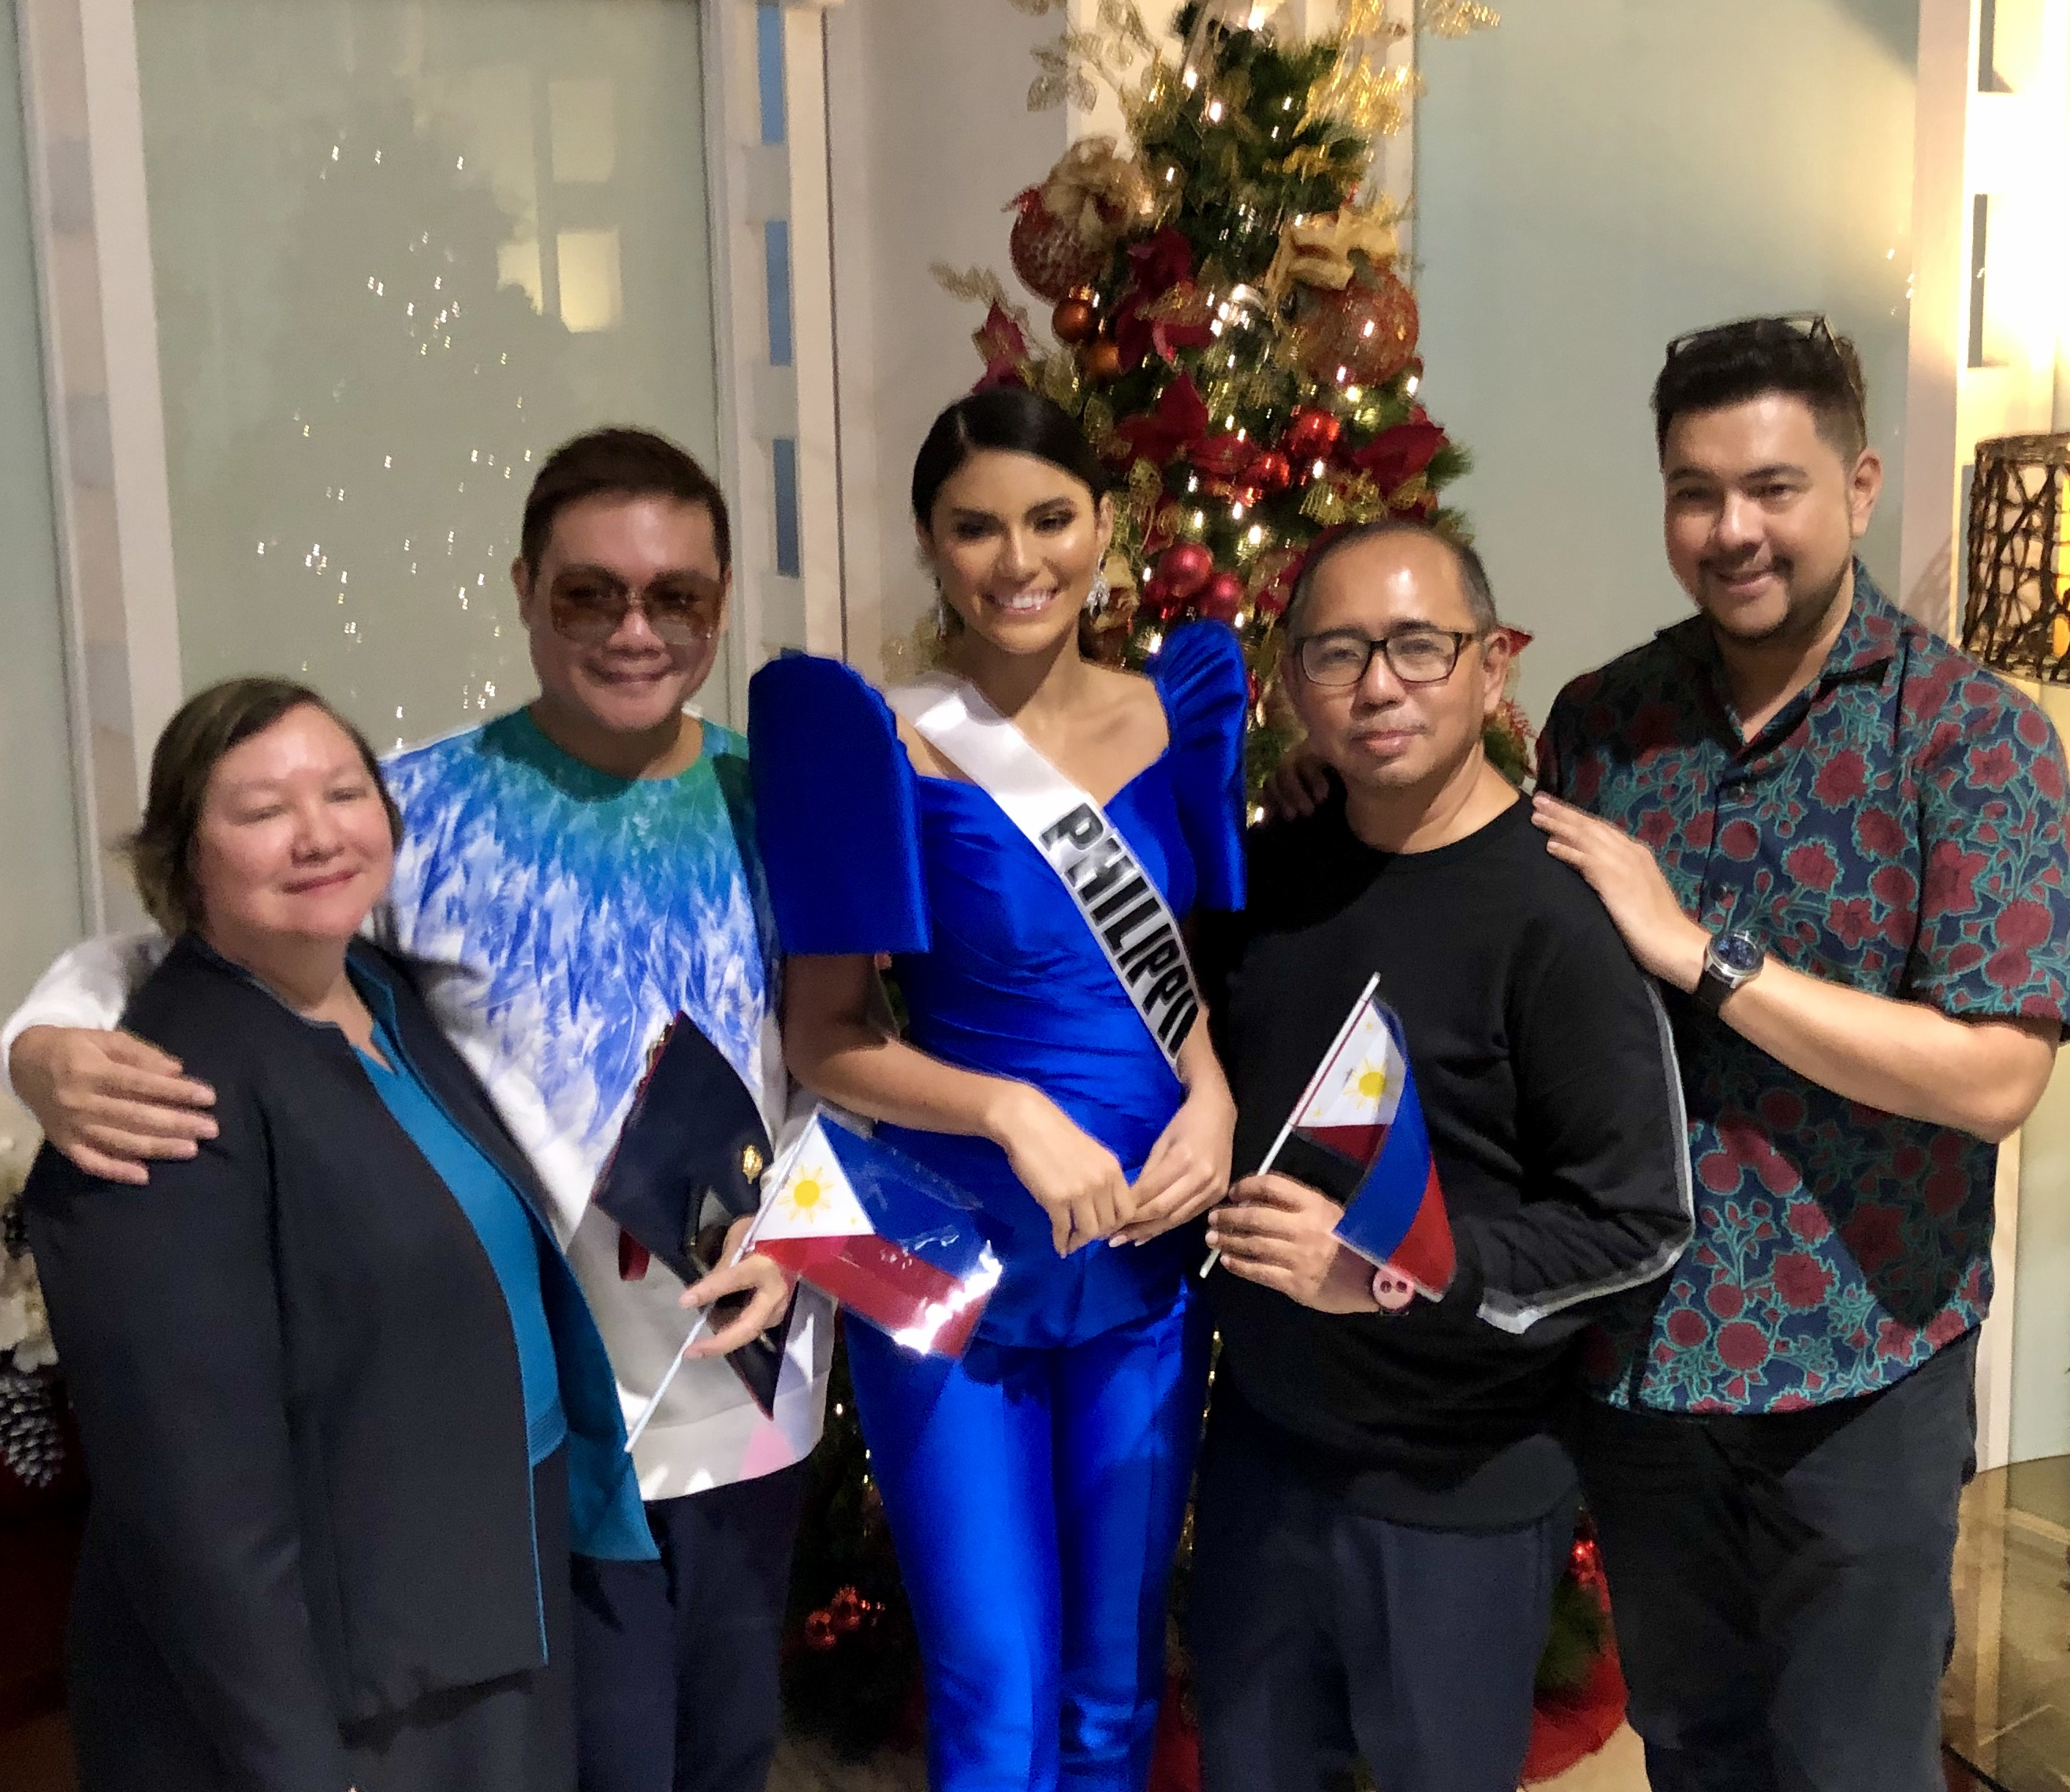 SUPPORT.  Liliana Soriano of BPCI, Jonas Gaffud of Miss Universe Philippines, Gazini Ganados, Rodgil Flores of Kagandahang Flores Camp, and Gines Enriquez of BPCI all came to show a unified front for our country.